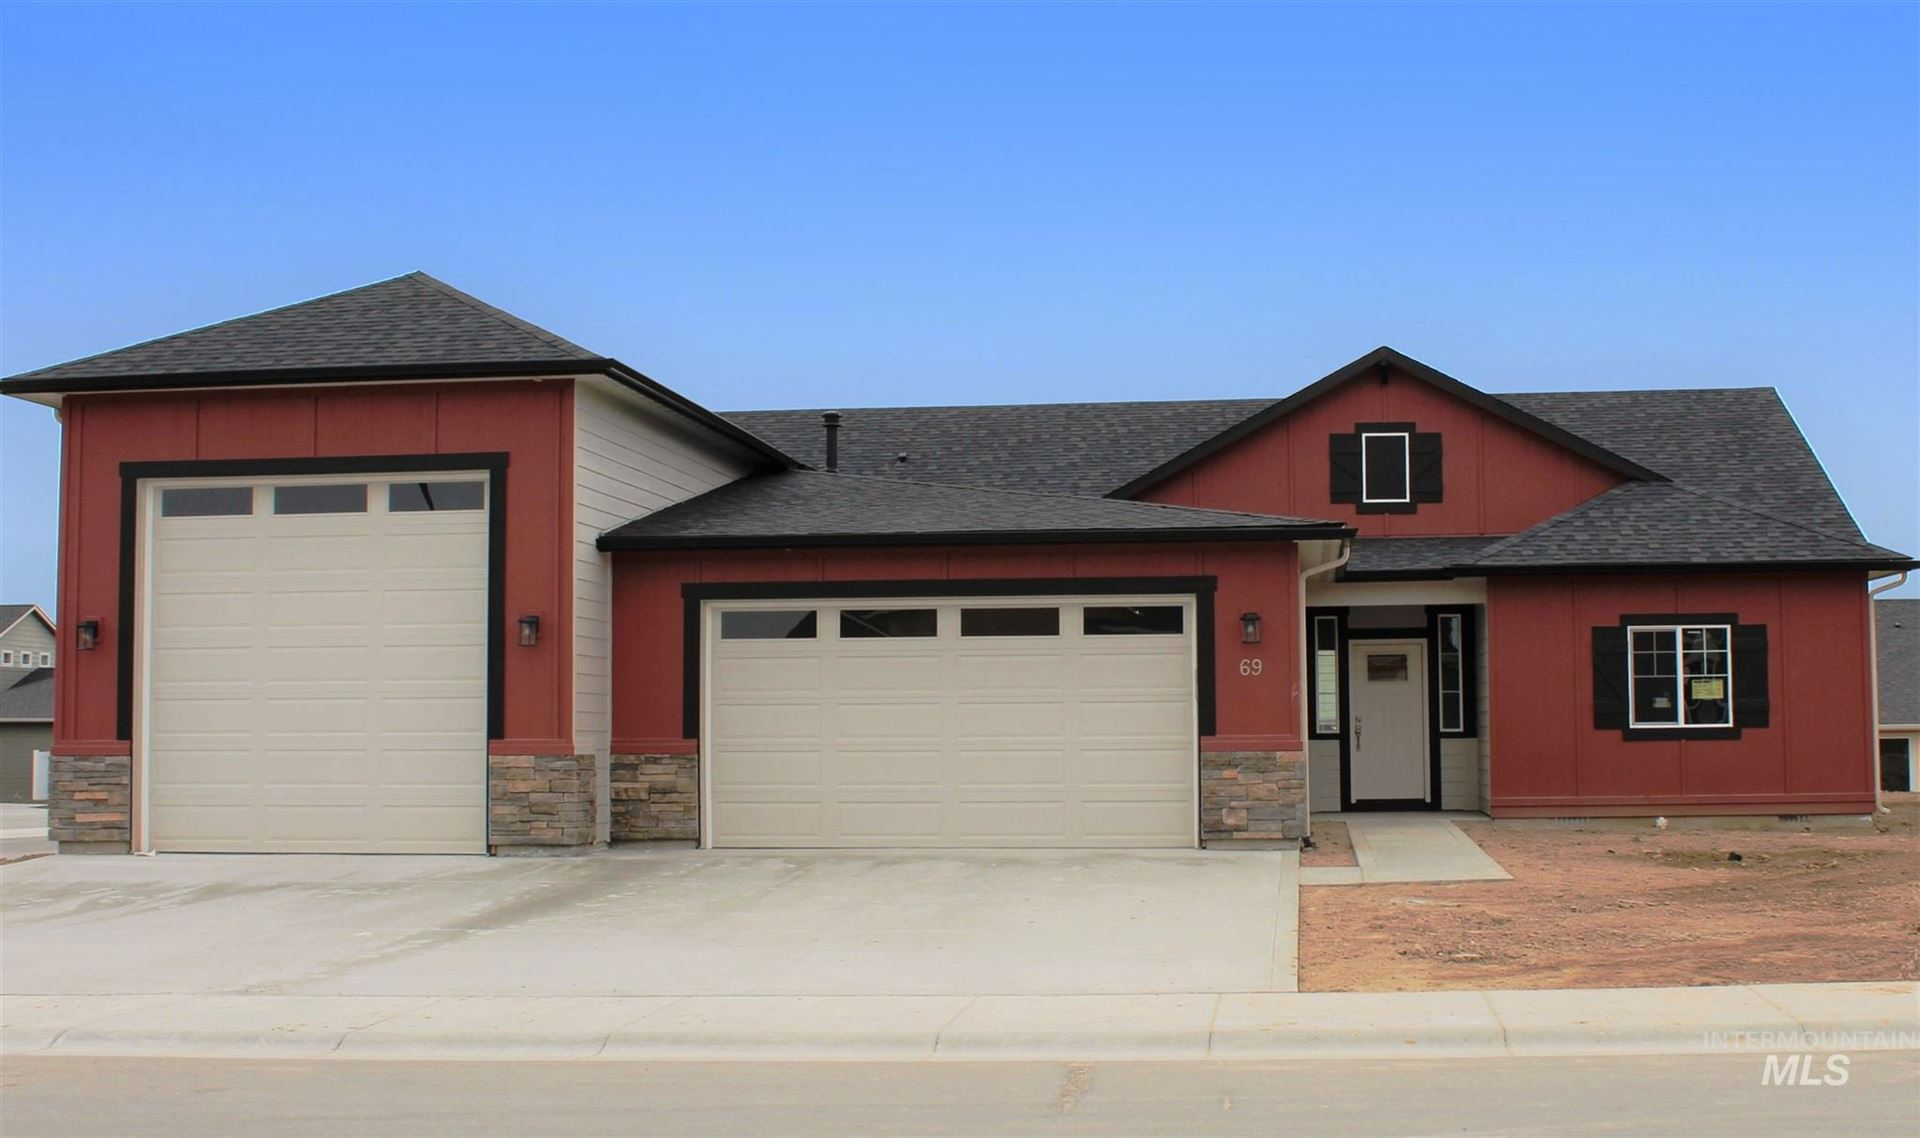 69 S Norcrest Ave., Nampa, ID 83687 - MLS#: 98770348